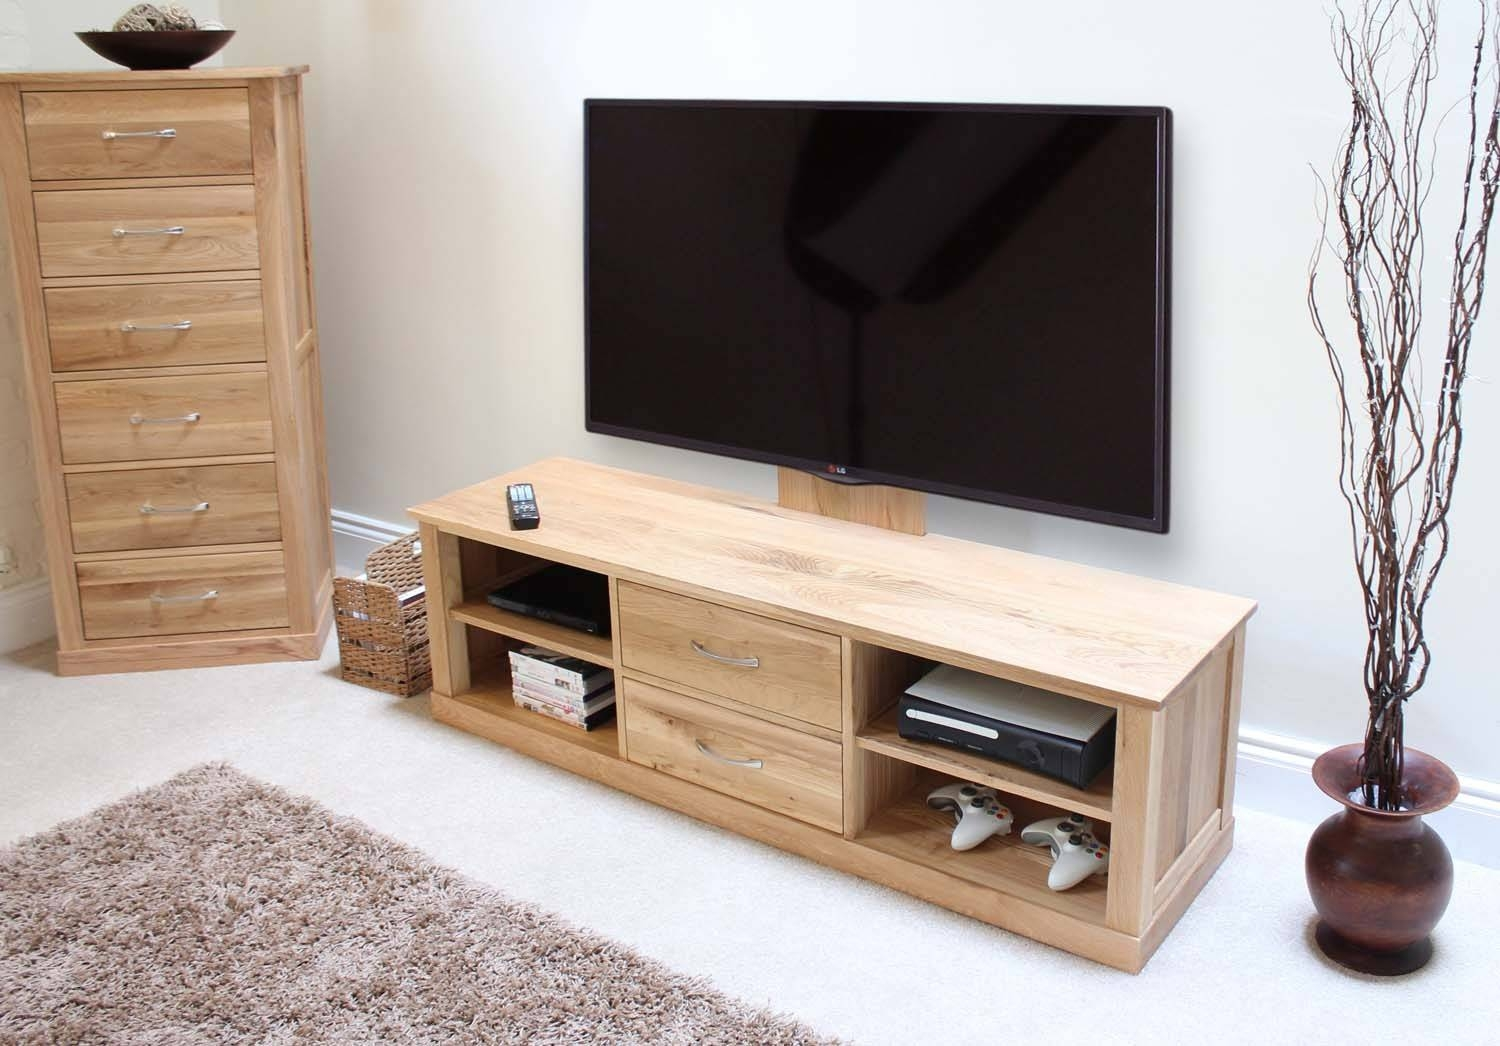 Modern Light Oak Tv Units | Buy Online At Zurleys regarding Light Oak Tv Cabinets (Image 8 of 15)